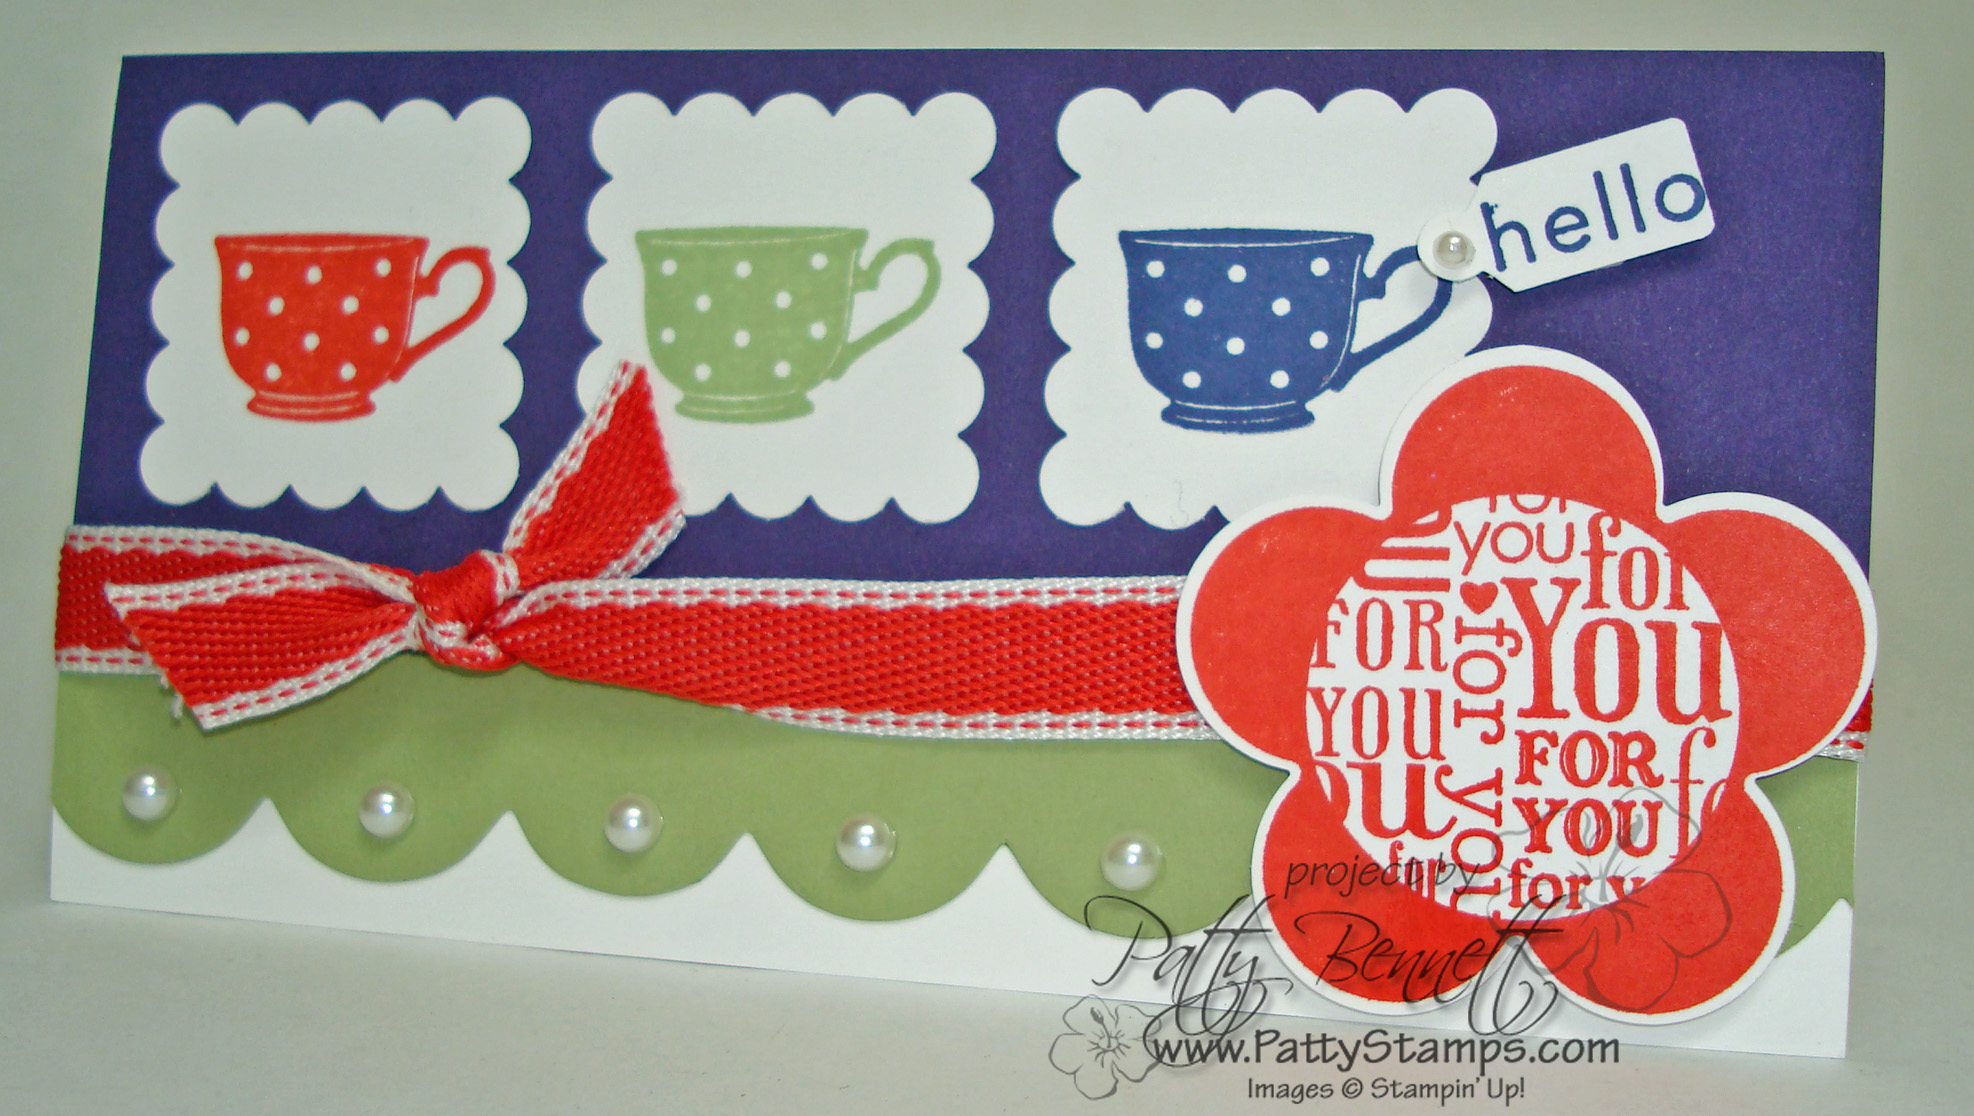 Carte Stampin Up.A La Carte Teacup Stamp Stampin Up In Colors Patty Stamps